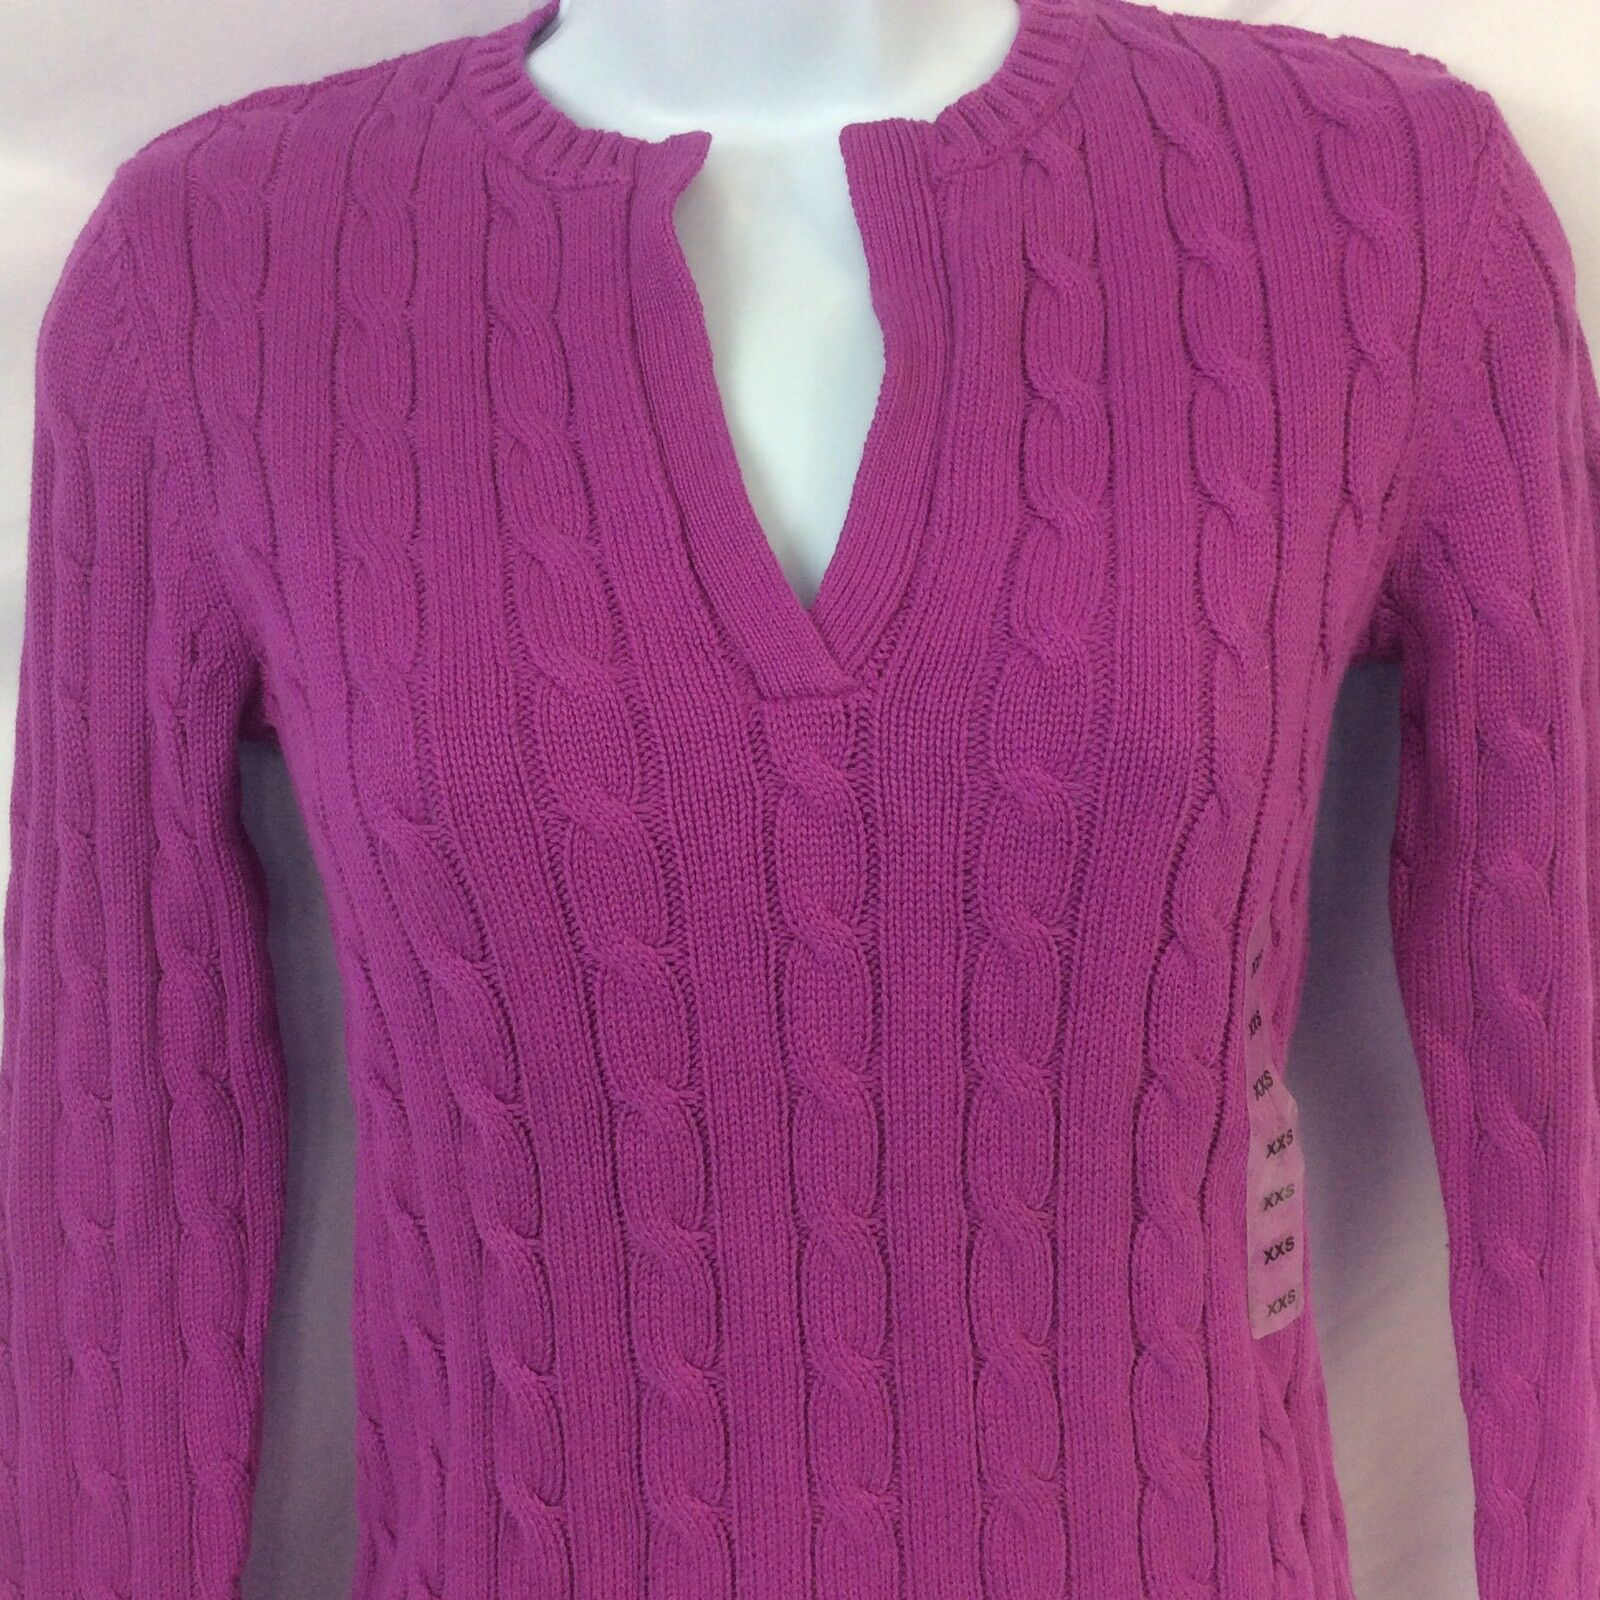 Lauren Ralph Lauren Womens Sweater Cable Knit Size XXS Pink Retail